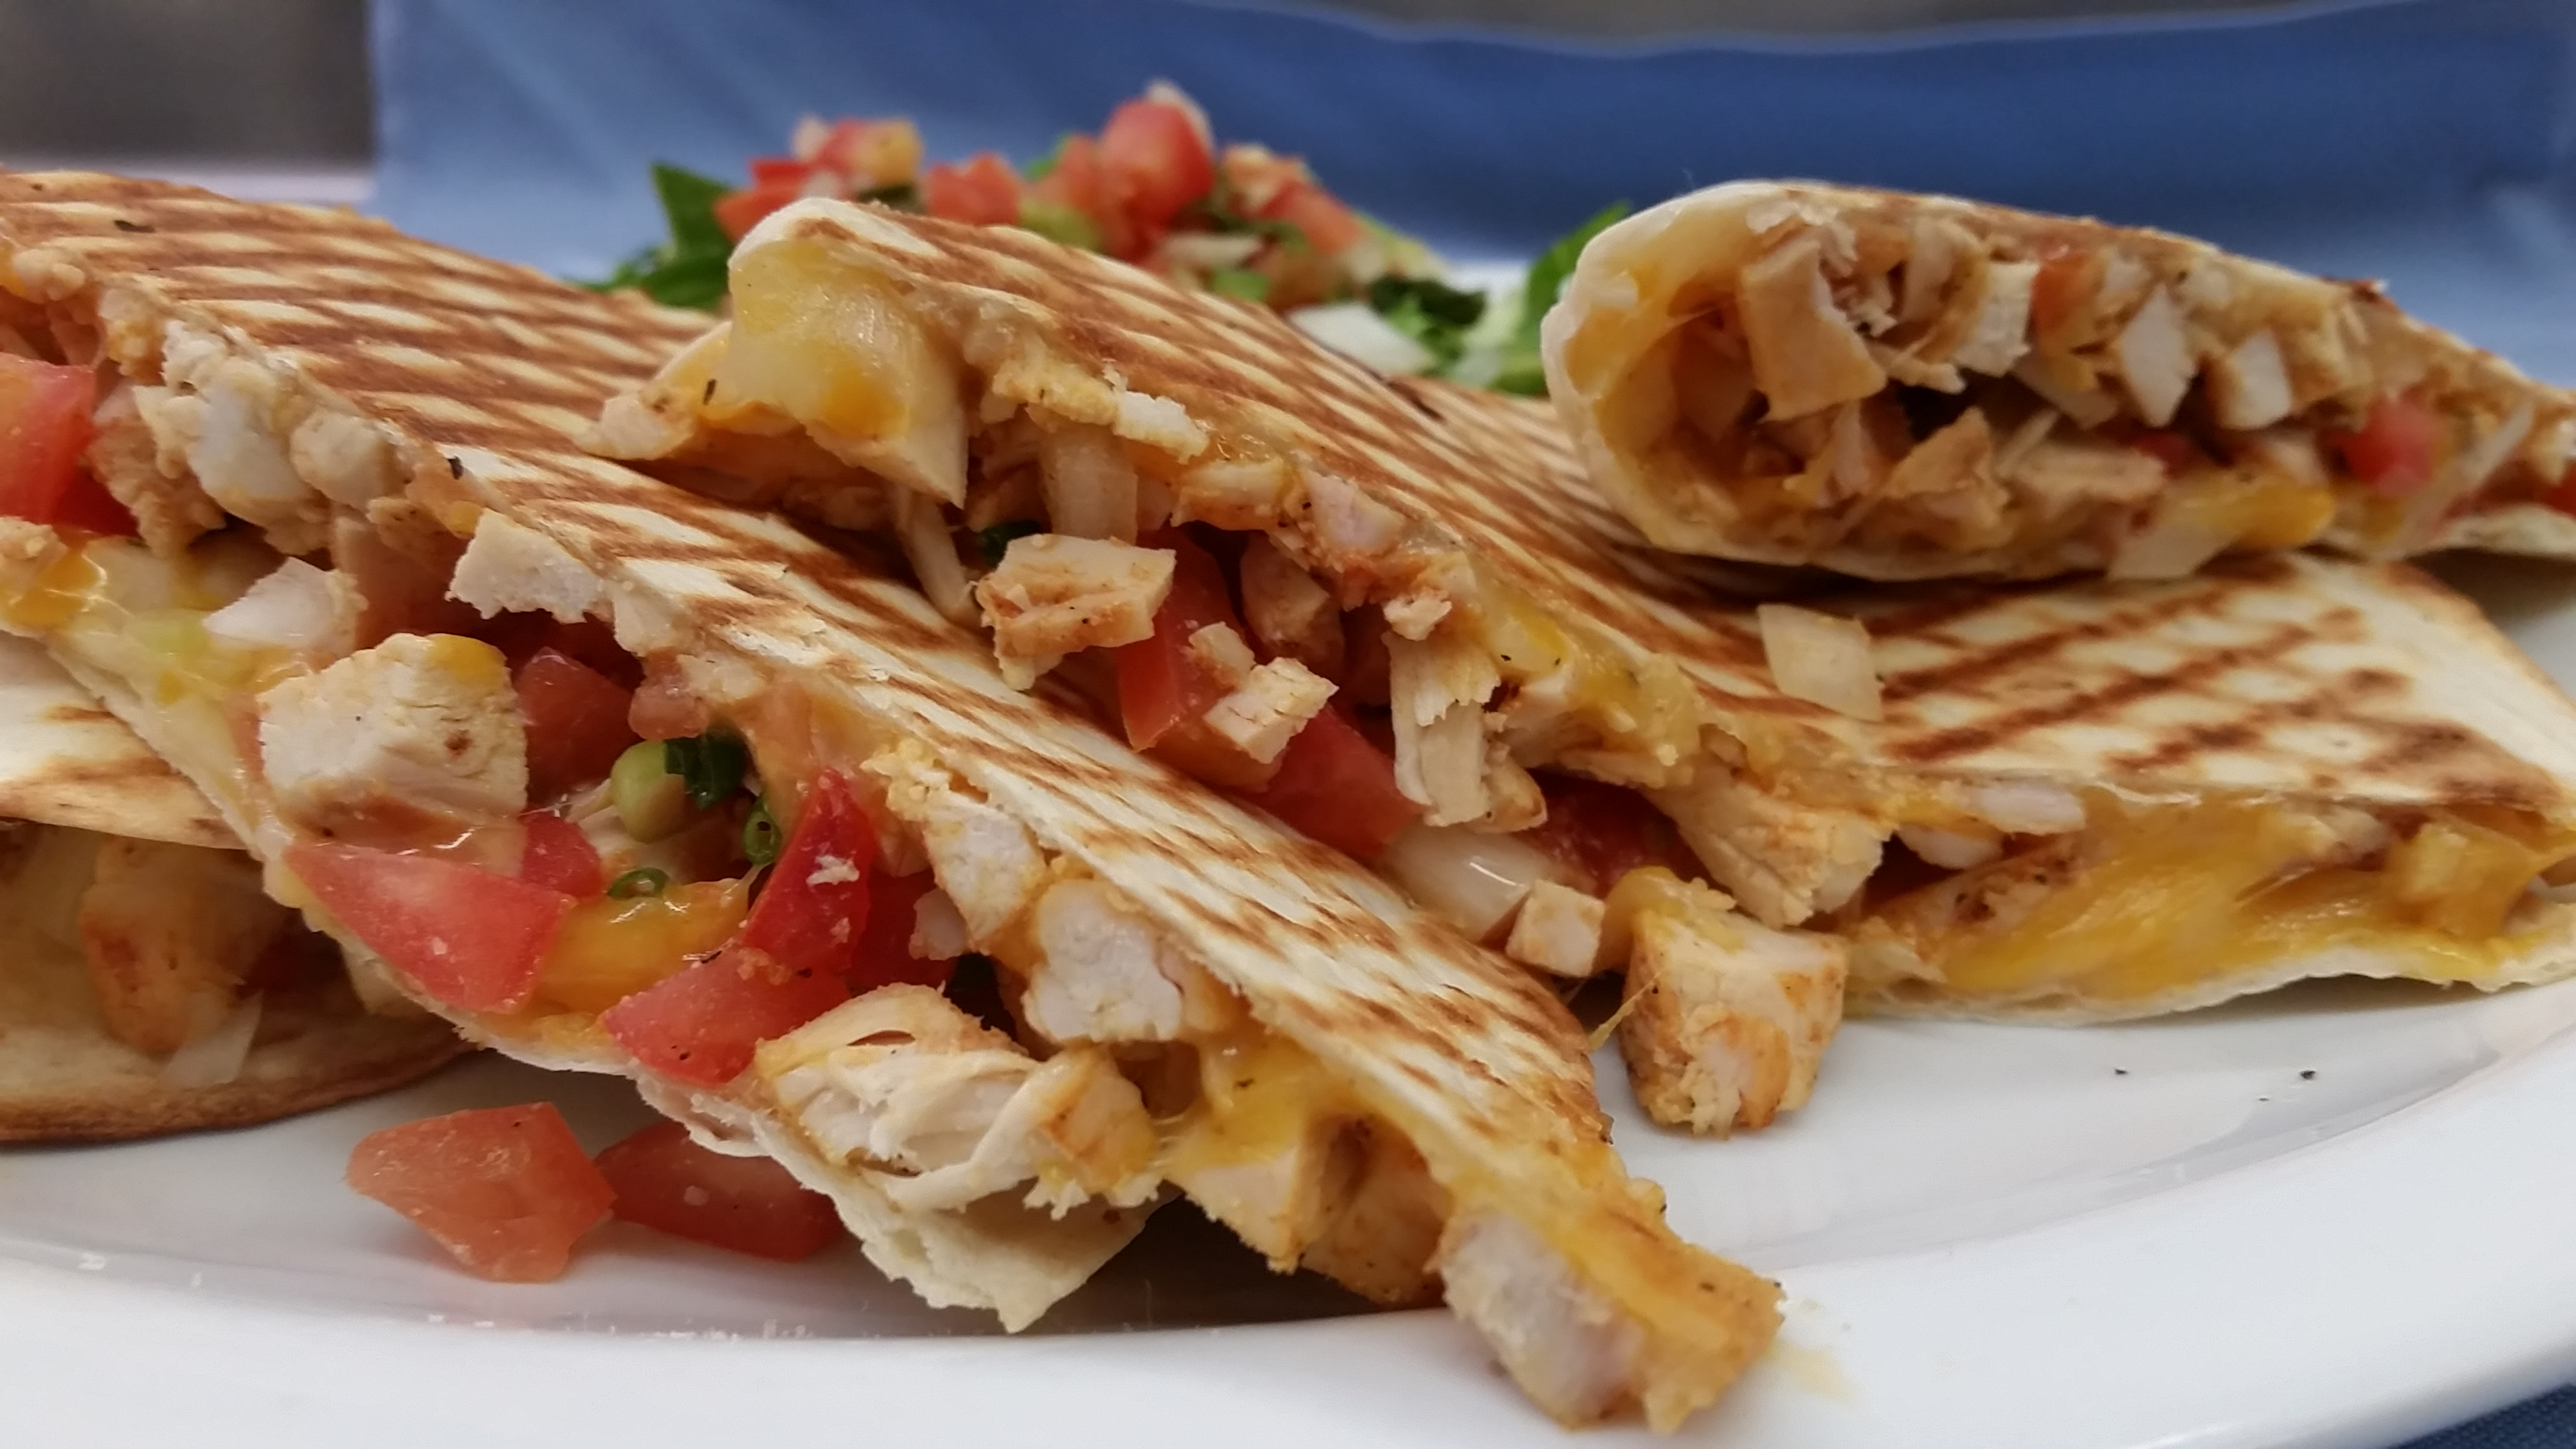 MJS-WEBSITE-CHICKEN-QUESADILLA